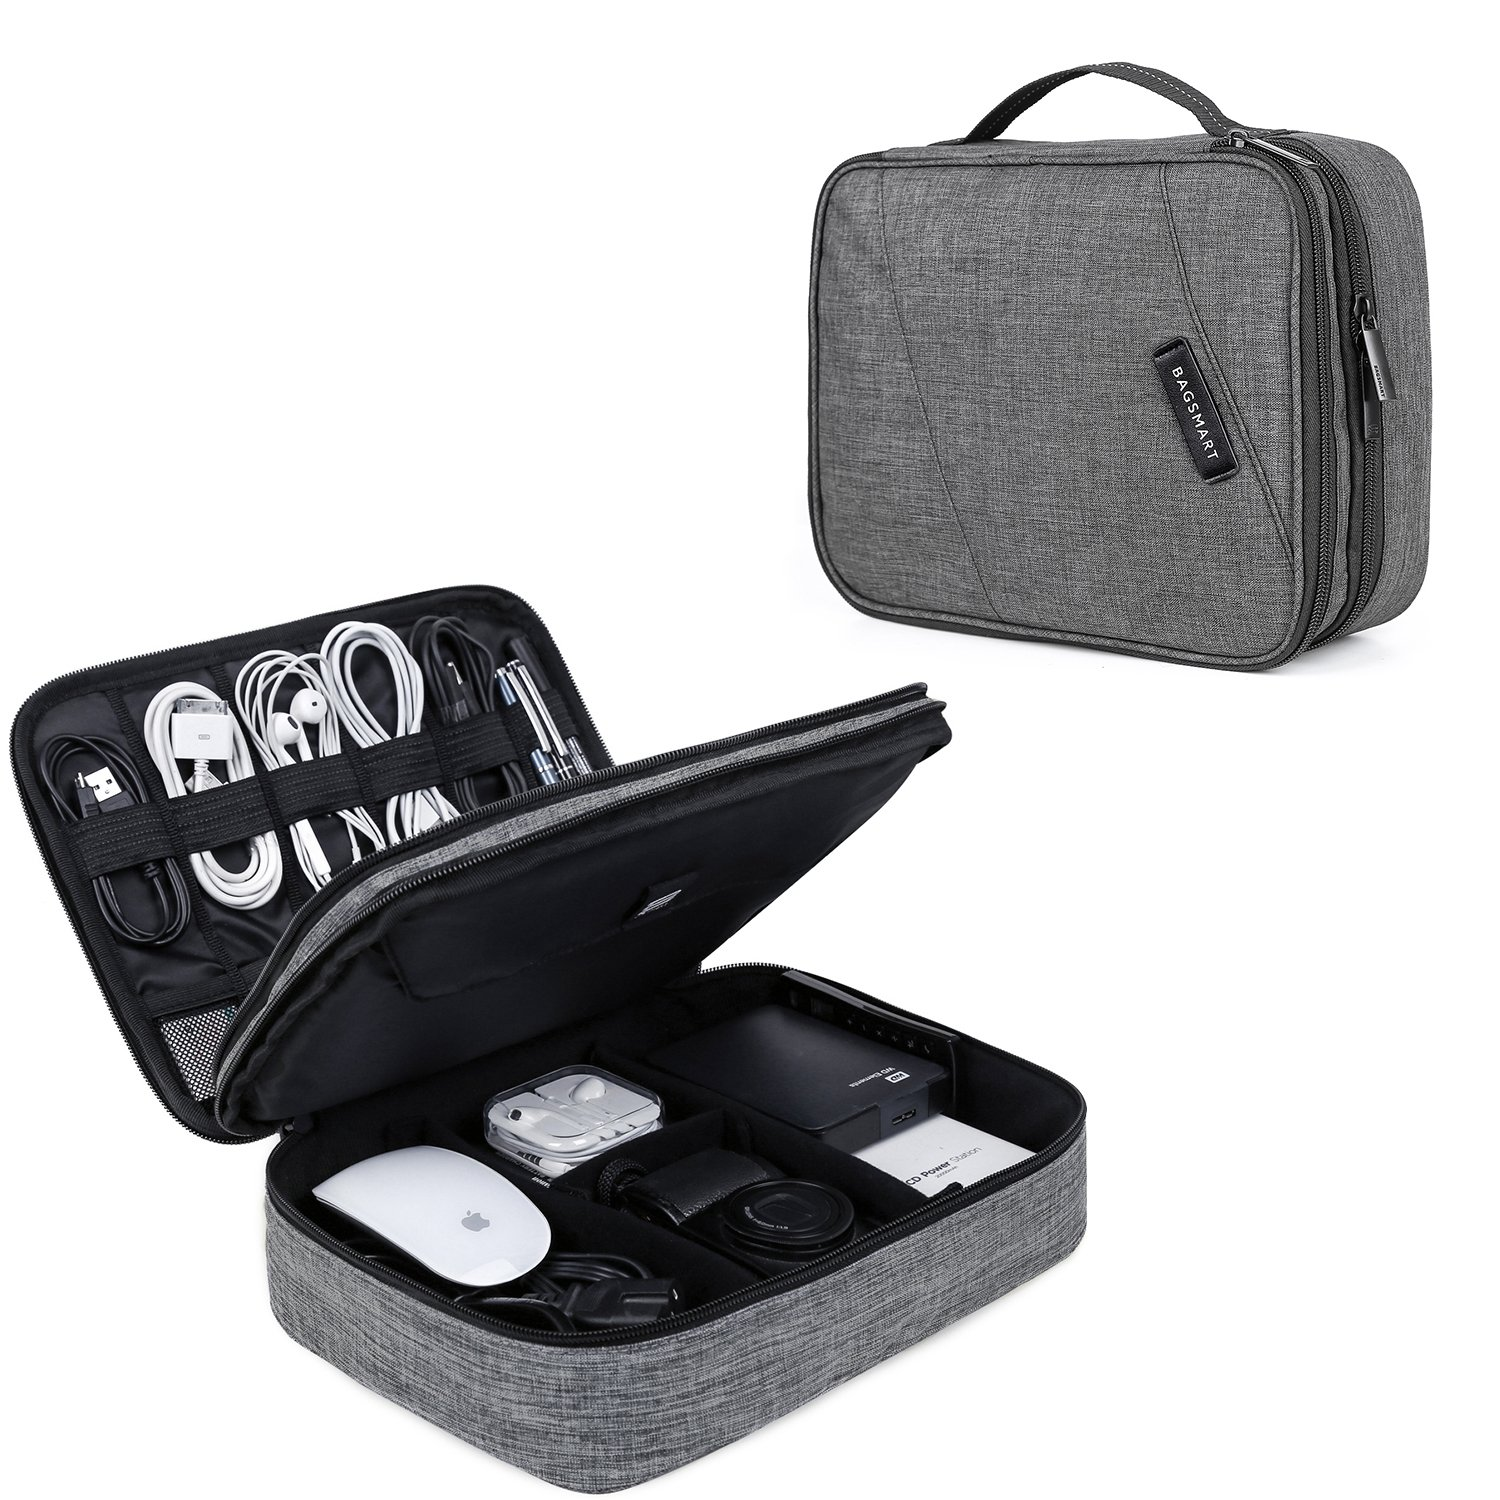 BAGSMART Double Layer Travel Universal Cable Organizer Cases Electronics Accessories Storage Bag for 10.5'' iPad Pro, iPad air, Charger, Kindle, Grey